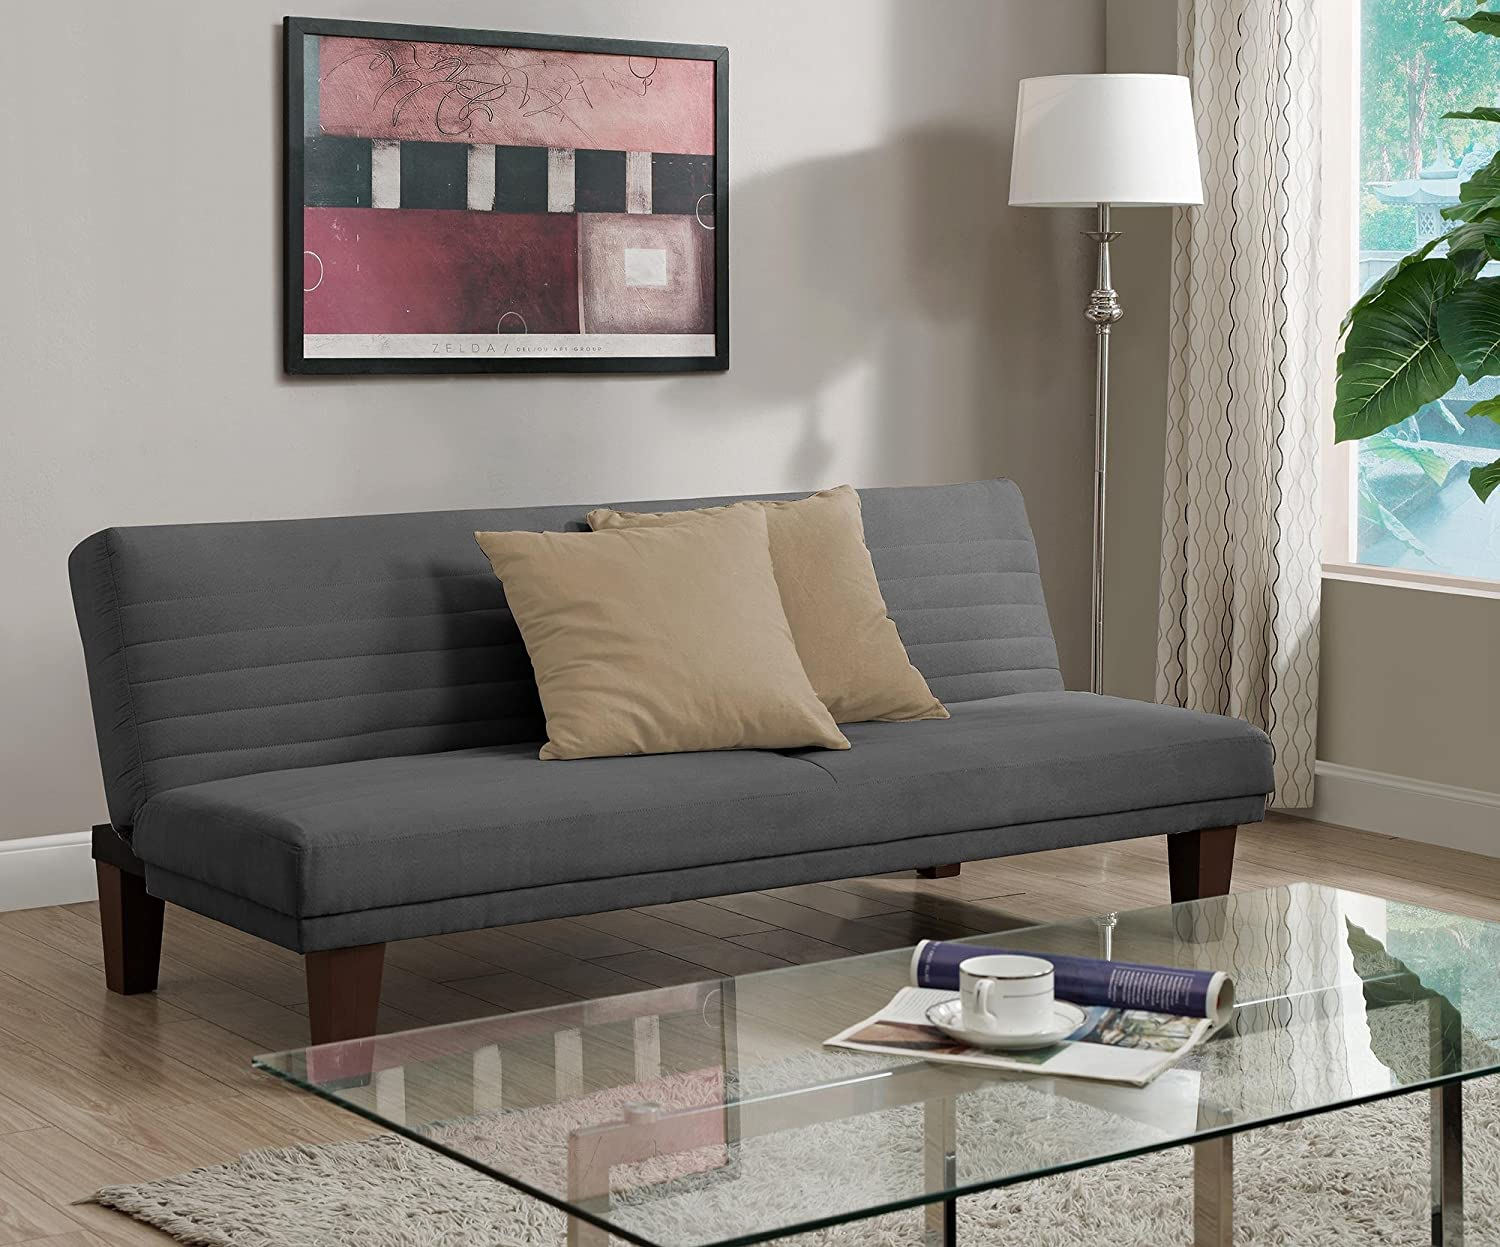 Dhp Dillan Convertible Futon Couch Bed With Microfiber Upholstery And Wood Legs   Grey by Dhp